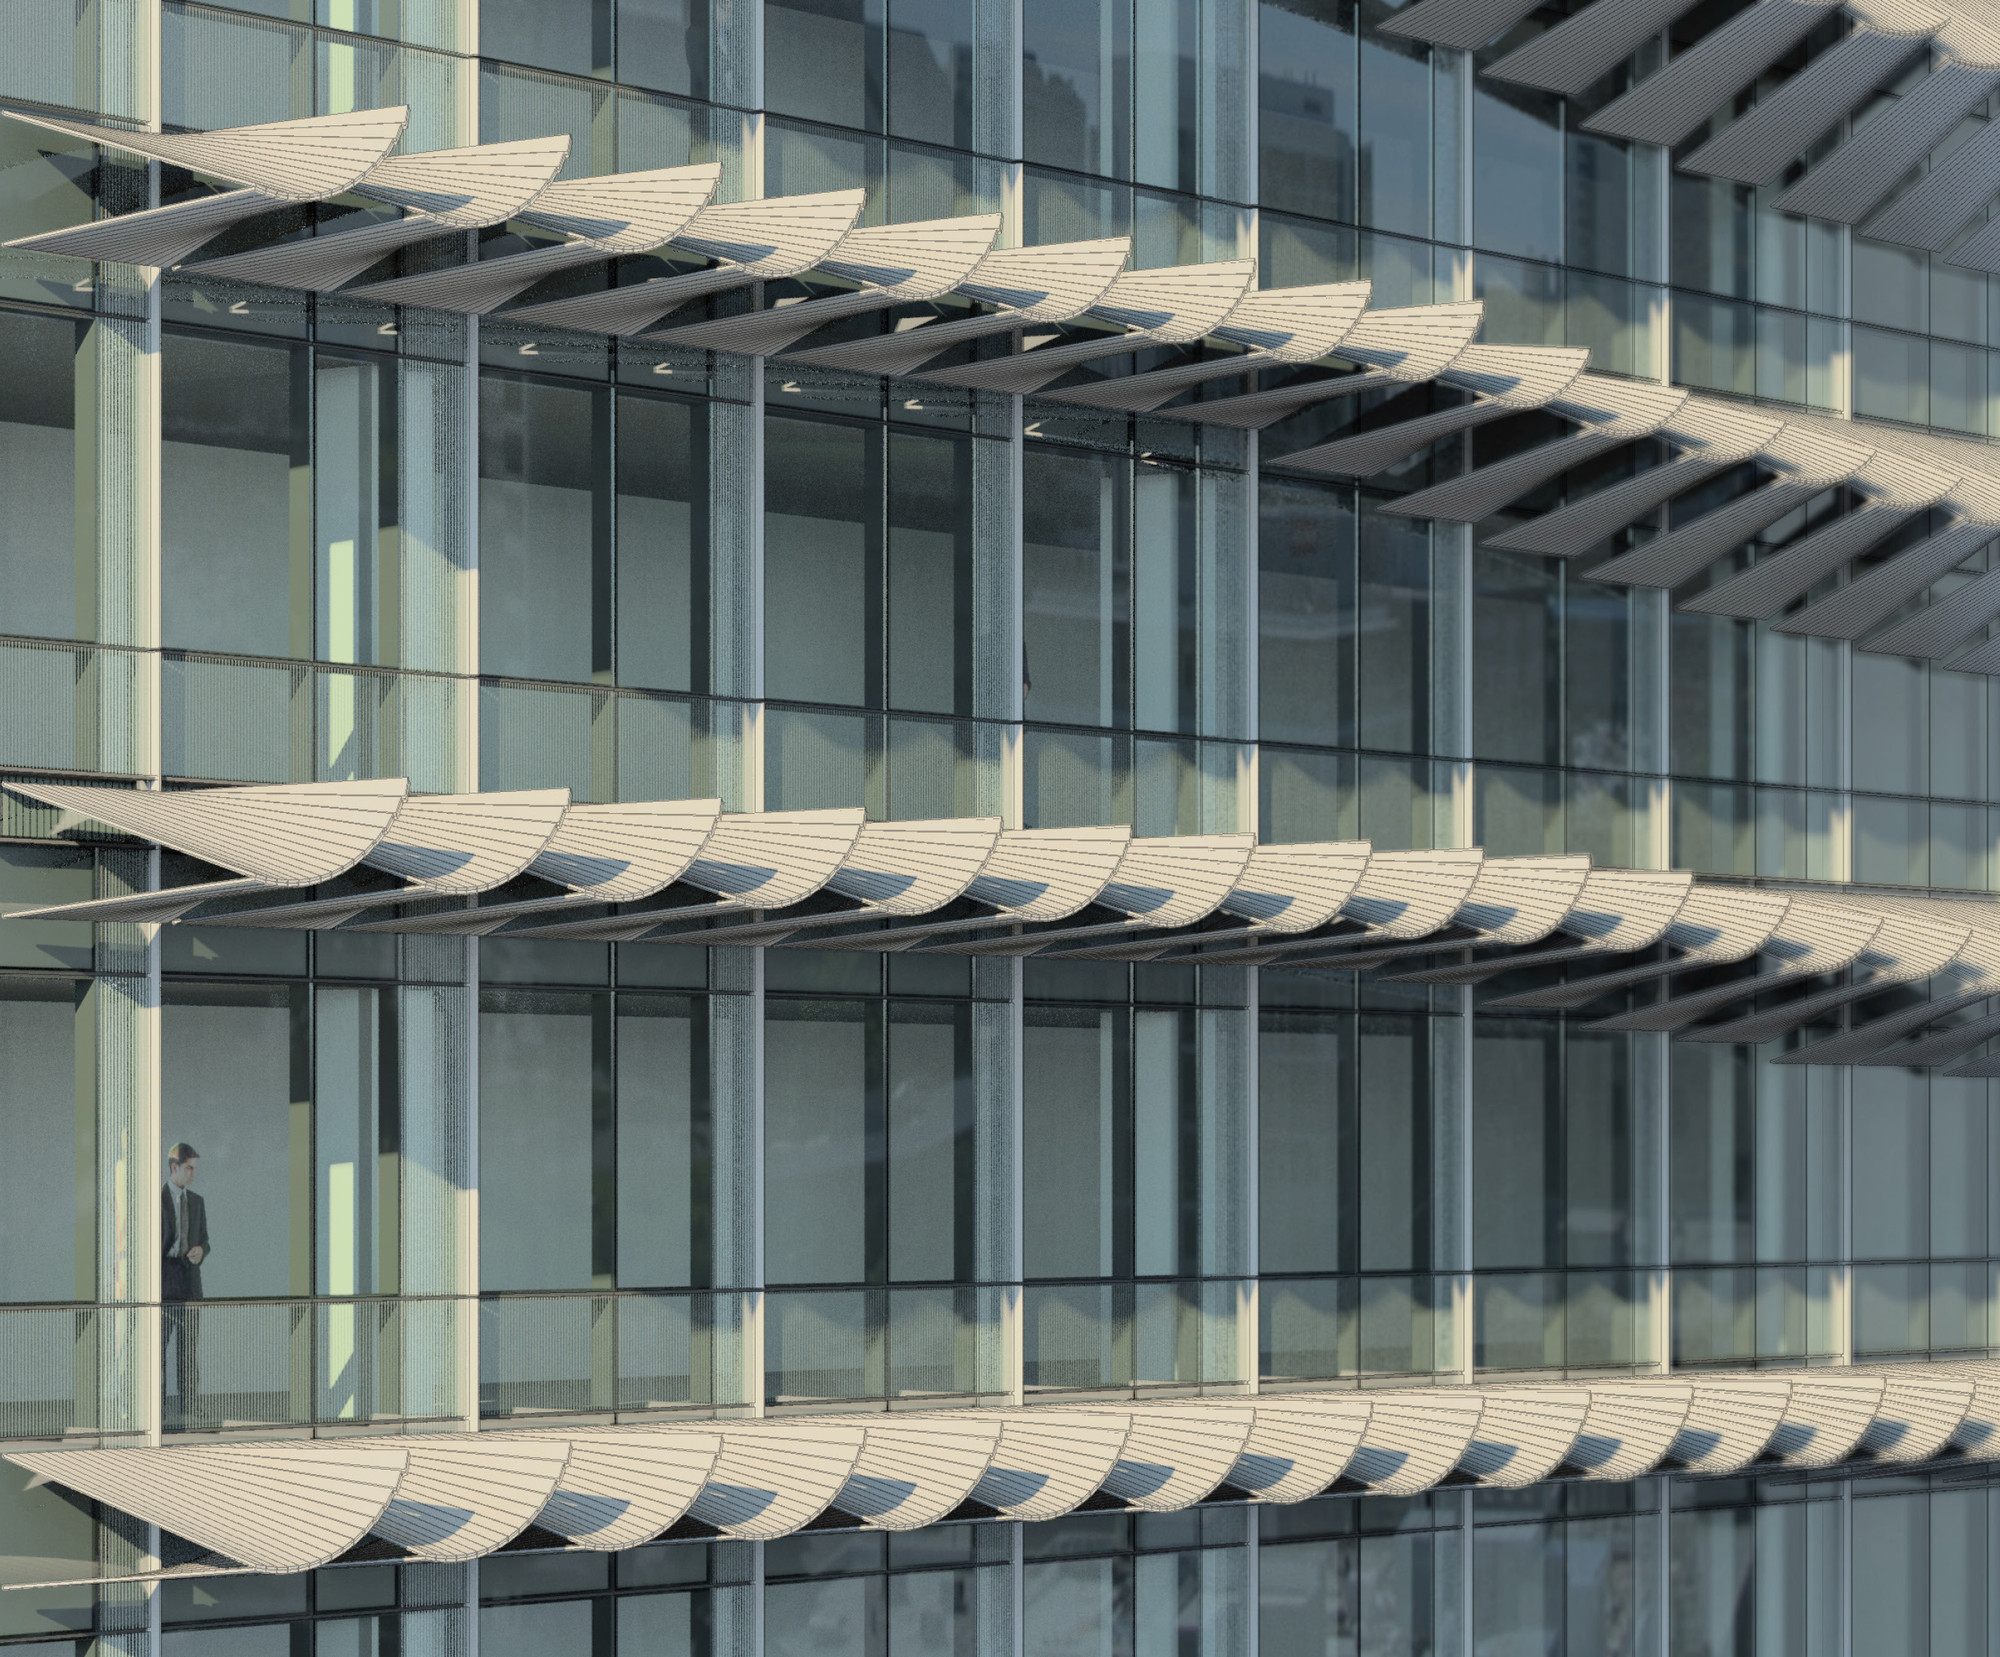 NBBJ Creates High Tech Shading System for Buildings , © NBBJ